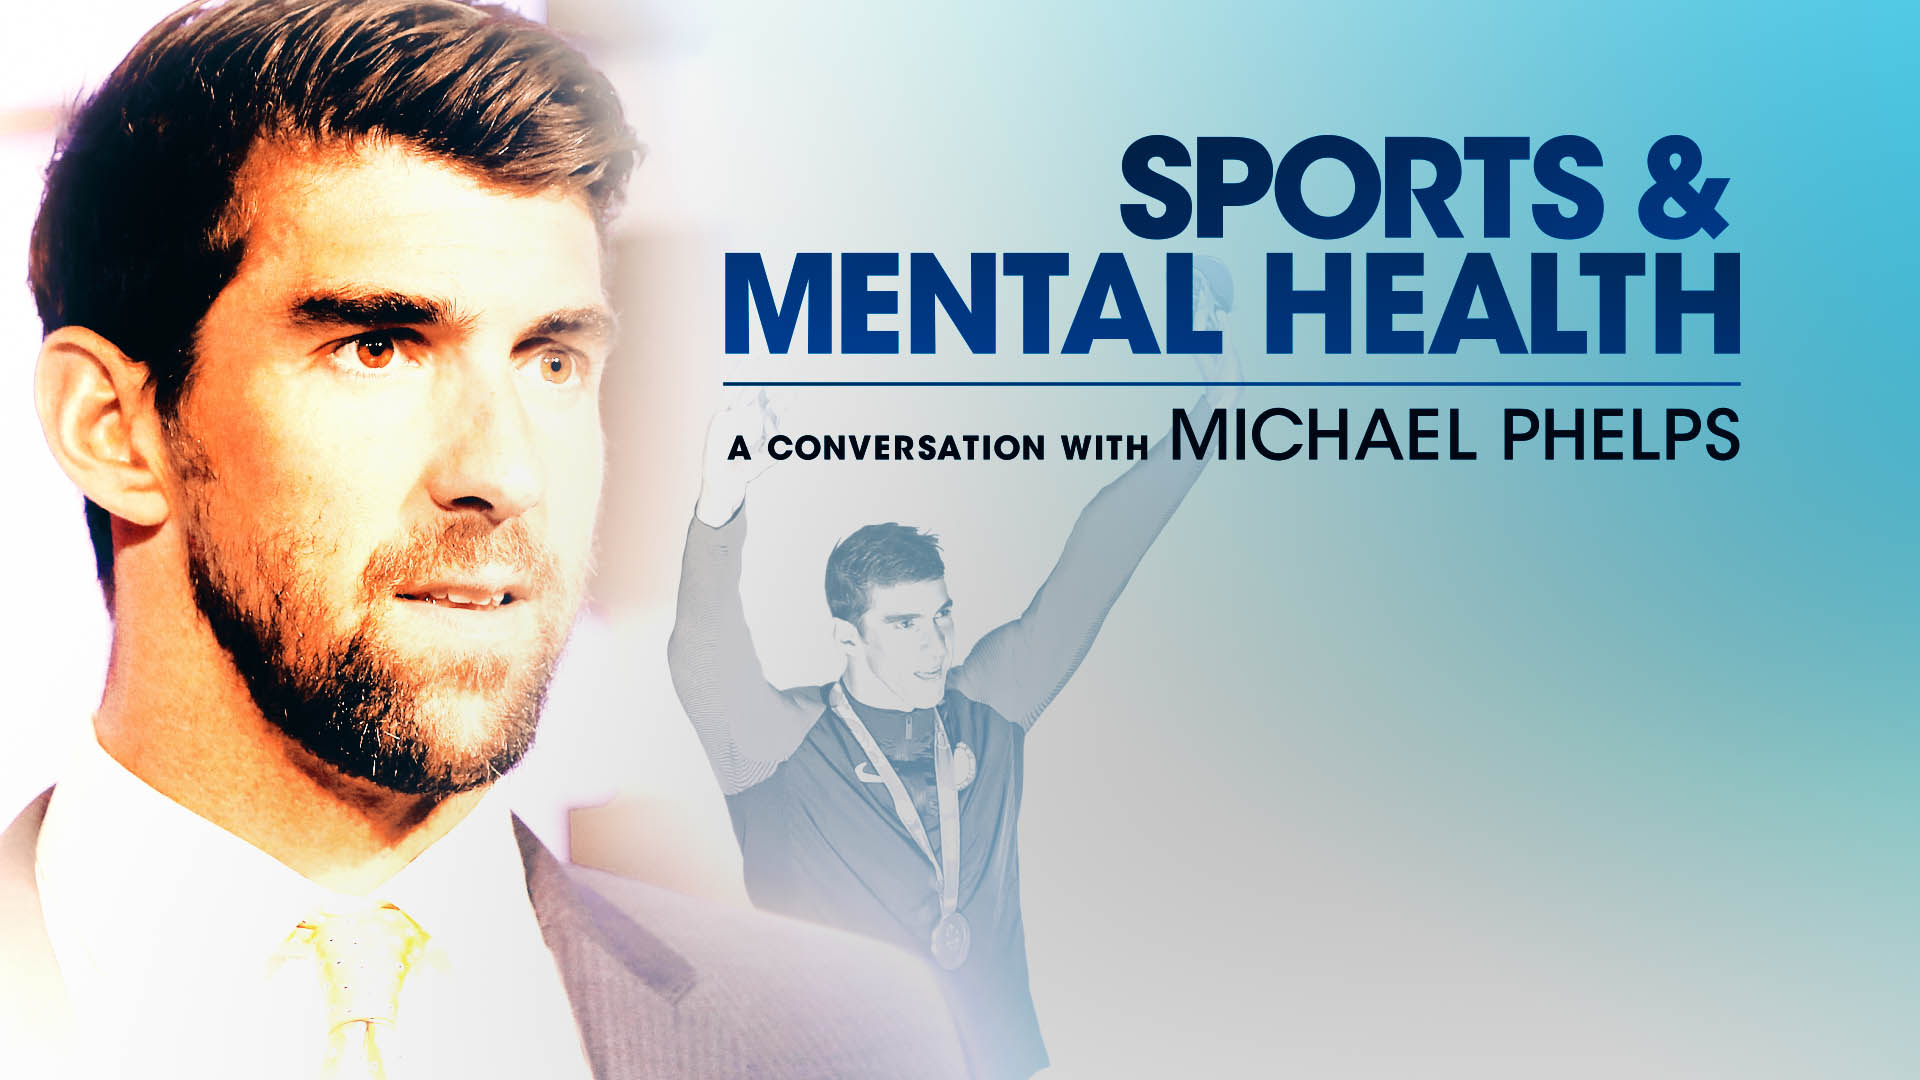 Phelps: The time is now to help athletes struggling with mental health